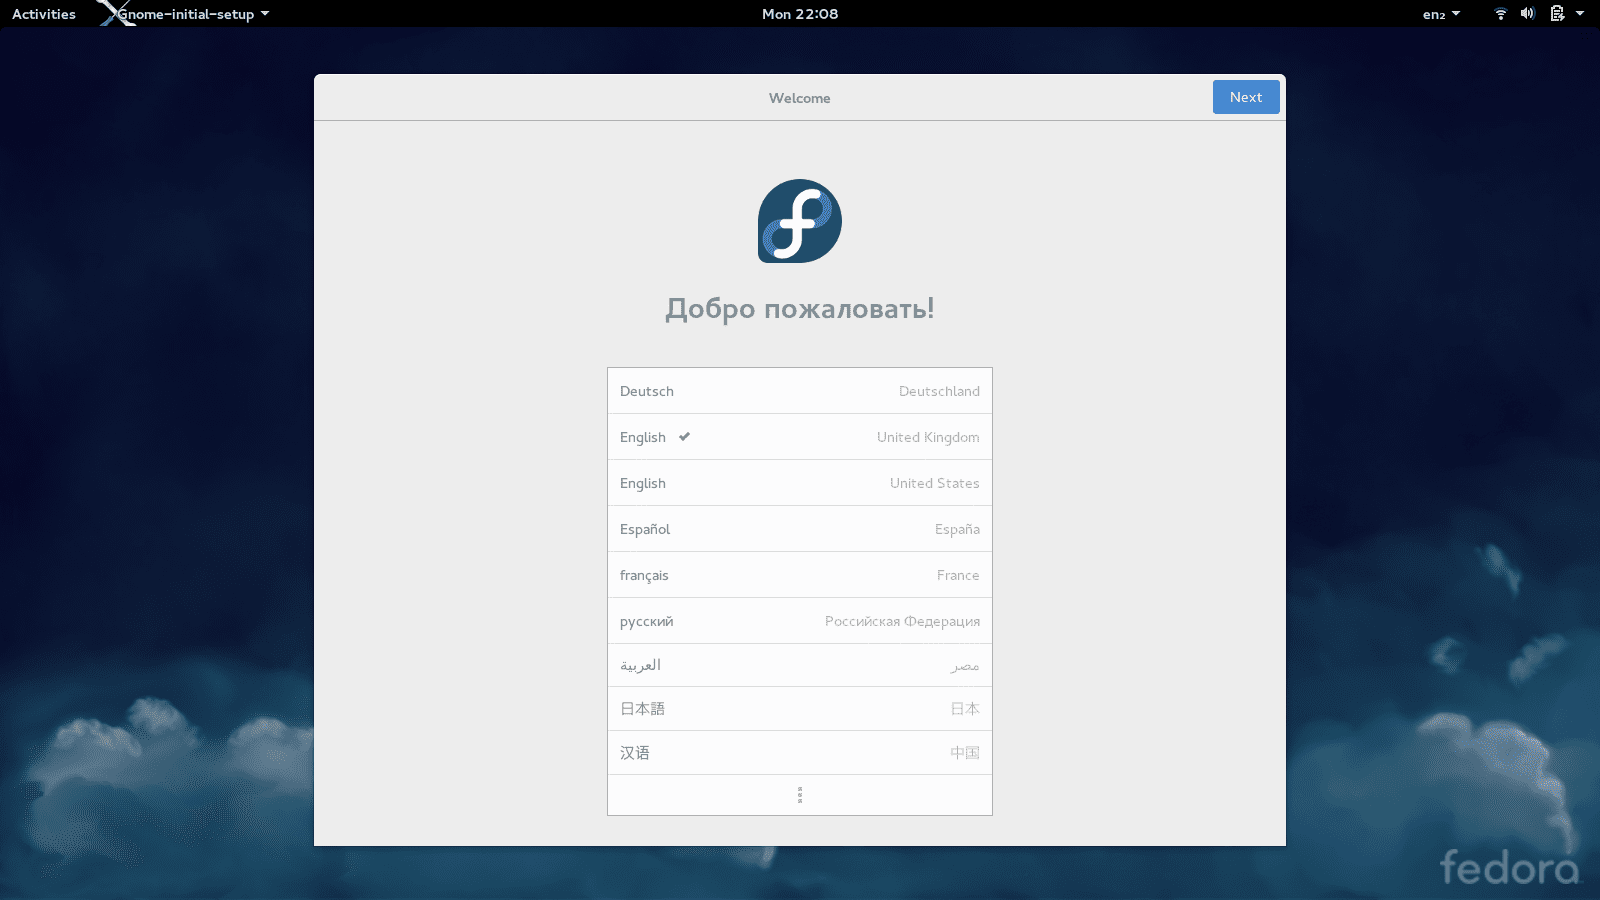 How to Install Fedora Linux in 10 Easy Steps